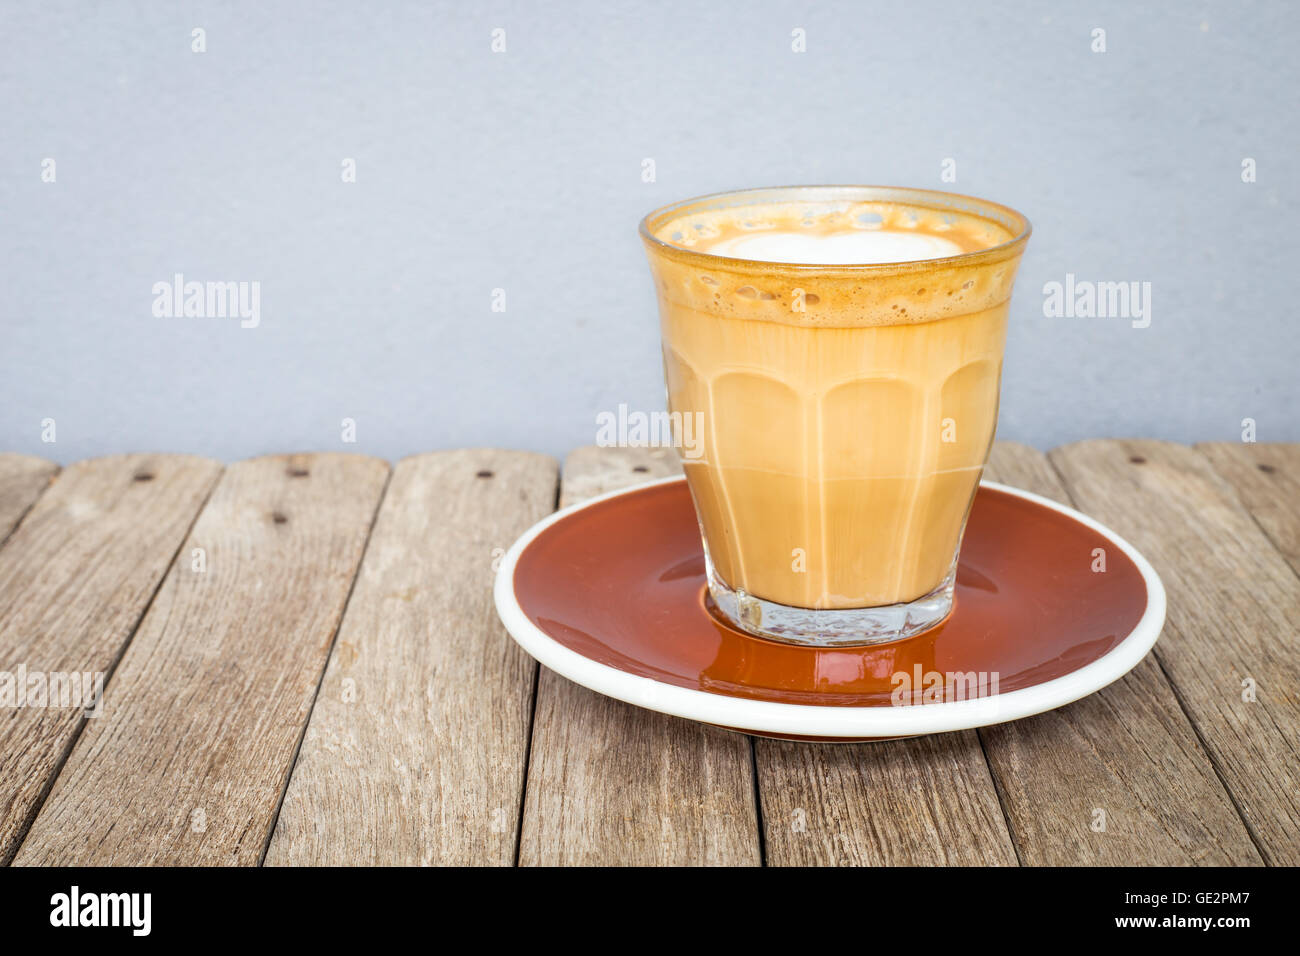 Latte Art Coffee In Glass Clear Cup On Wood Table Stock Photo Alamy